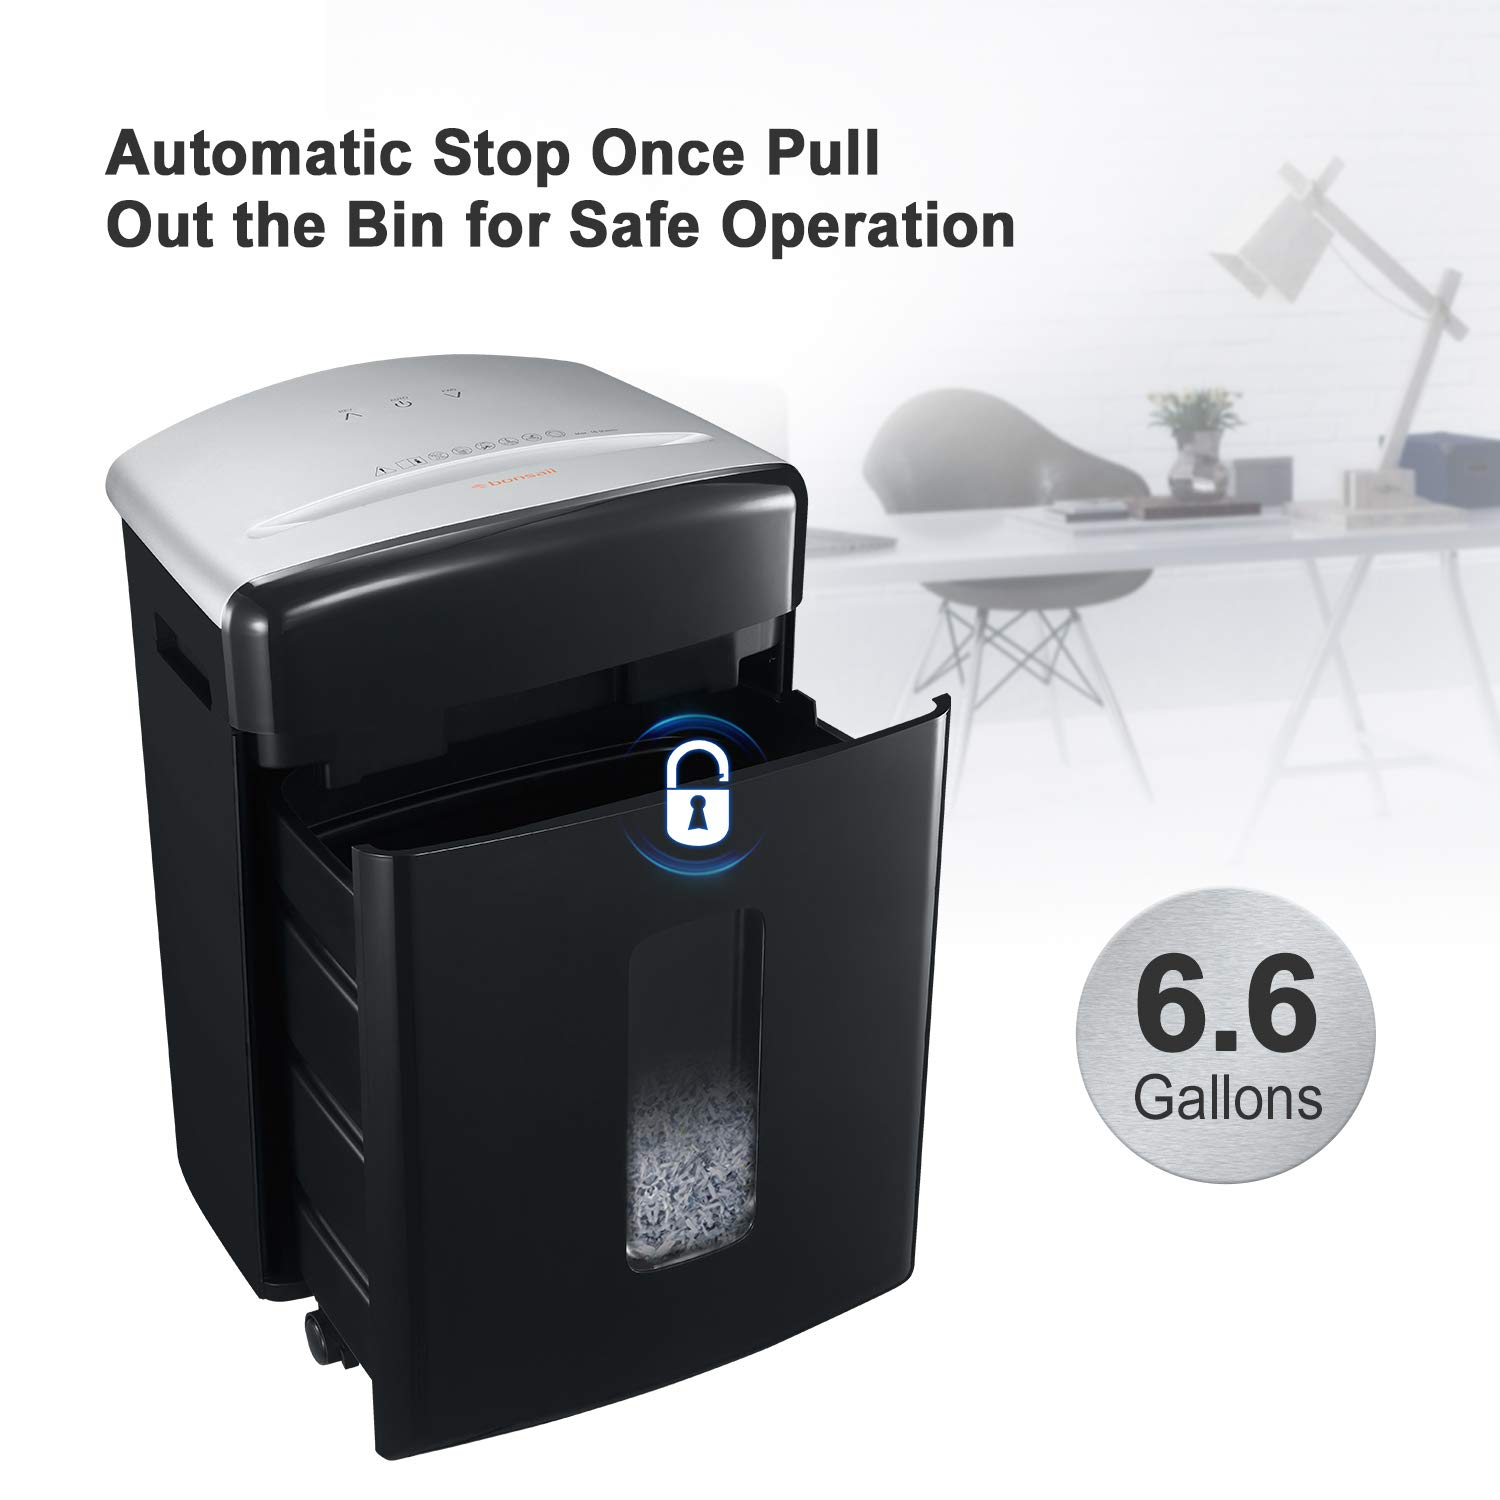 Bonsaii 16-Sheet Micro-Cut Paper/CD/Credit Card Shredder, 20 Minutes Running Time, 60 dB Low Operation Noise, 6.6 Gallons Basket and 4 Casters (C222-B) by bonsaii (Image #6)